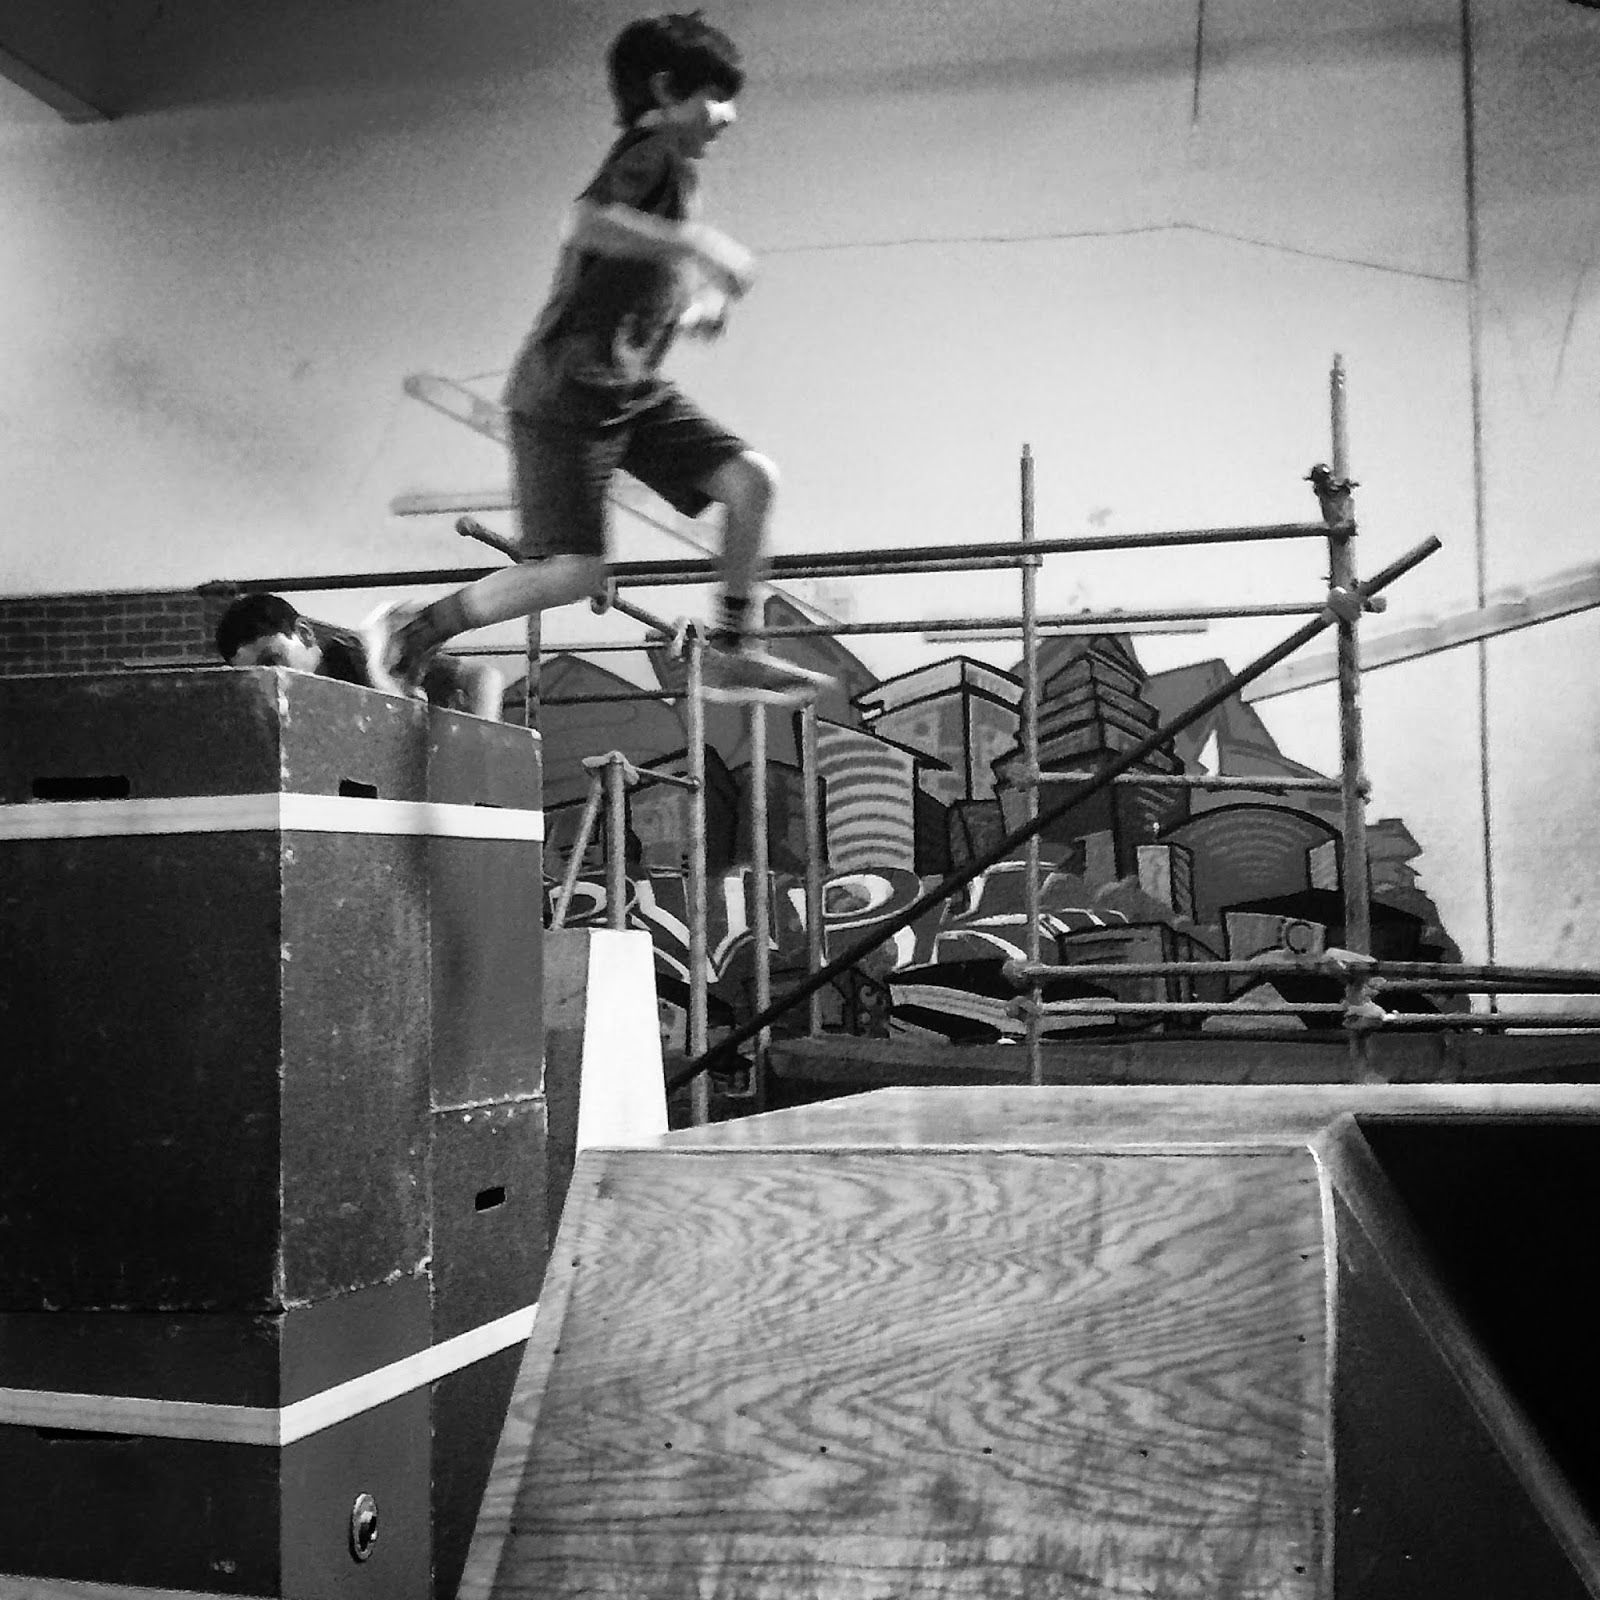 Portdaddia: Nine-year-old Giving Parkour A Try